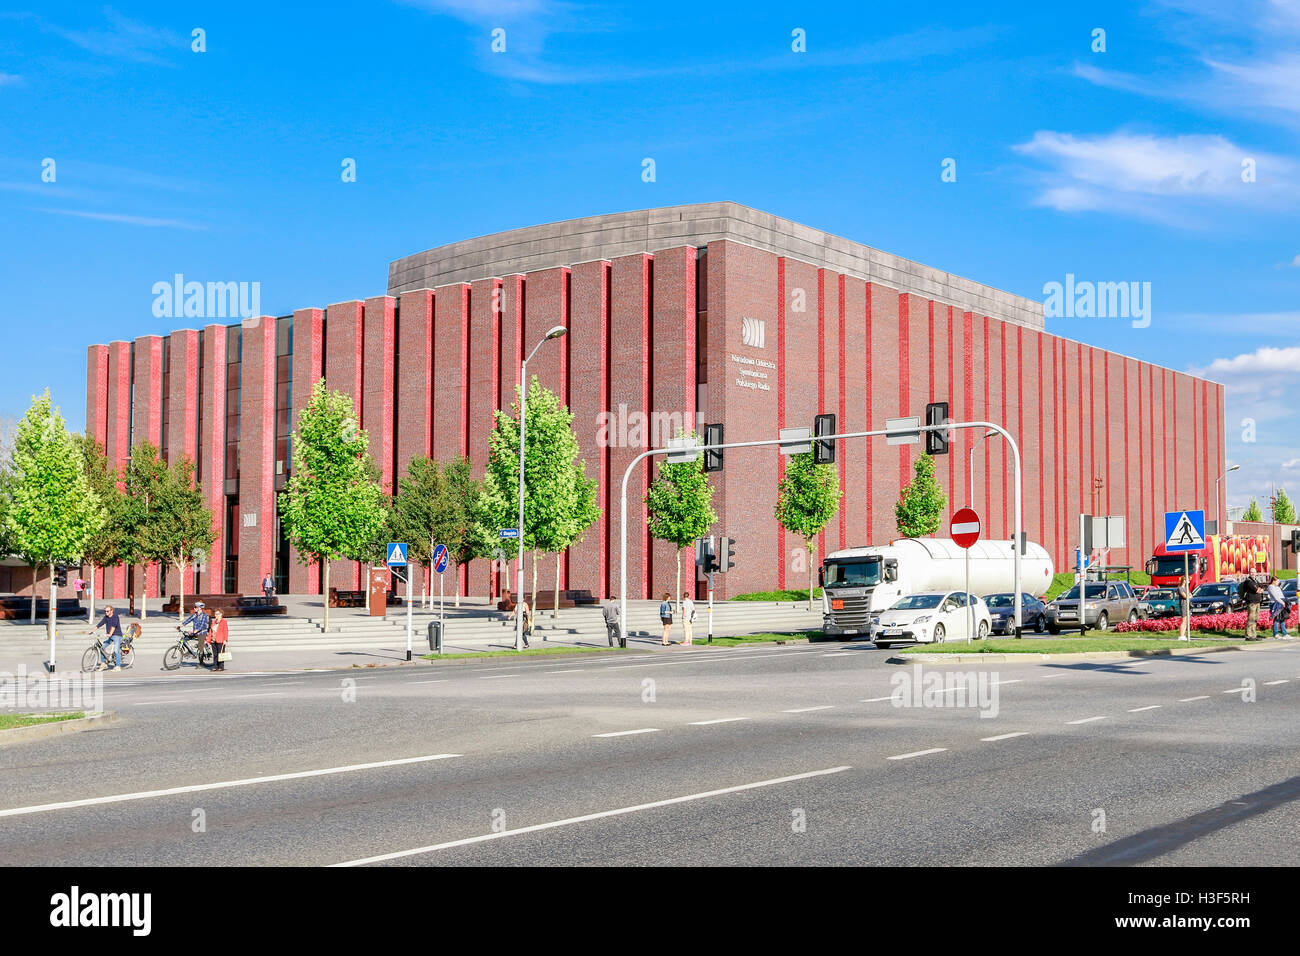 Polish National Radio Symphony Orchestra building in Katowice, Poland. Stock Photo